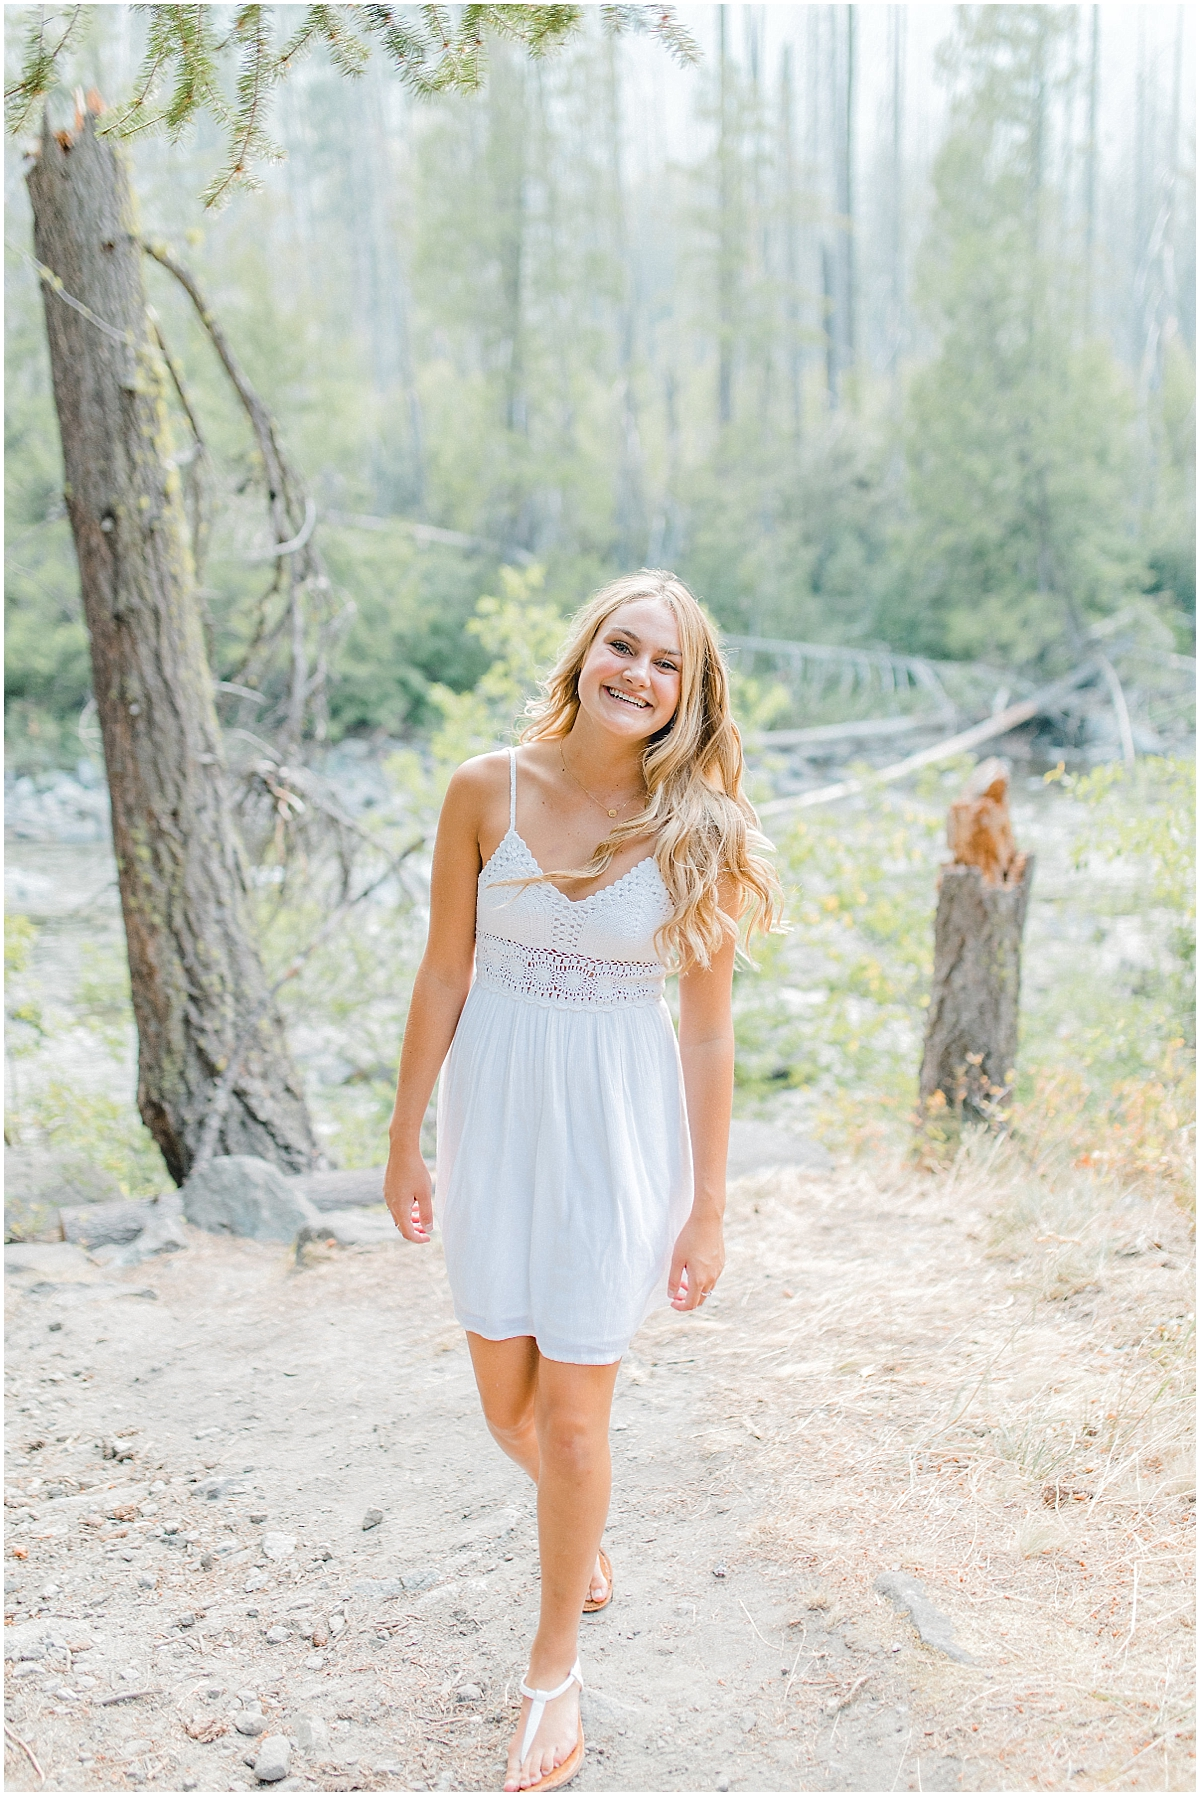 Emma Rose Company | Seattle Wedding and Portrait Photographer PNW | Light and Airy Style | Senior Style Guide What to Wear | Senior Portraits Leavenworth, Washington | Kindred Presets Film Style_0021.jpg